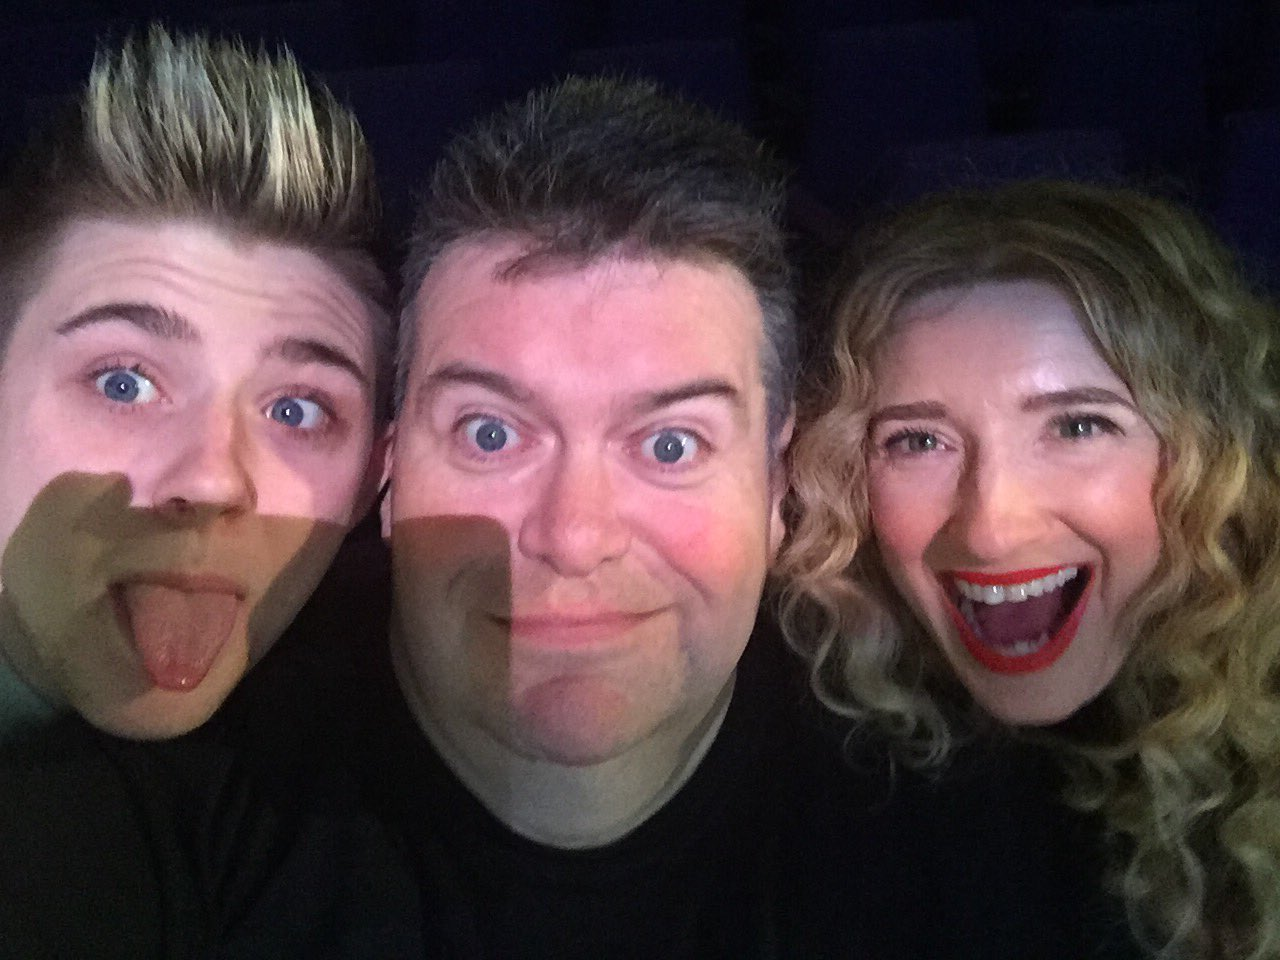 RT @mrtomurie: I'm in an X Factor sandwich.  @MelanieMasson1 @nickymcdonald1 https://t.co/9pbY3VEKXz